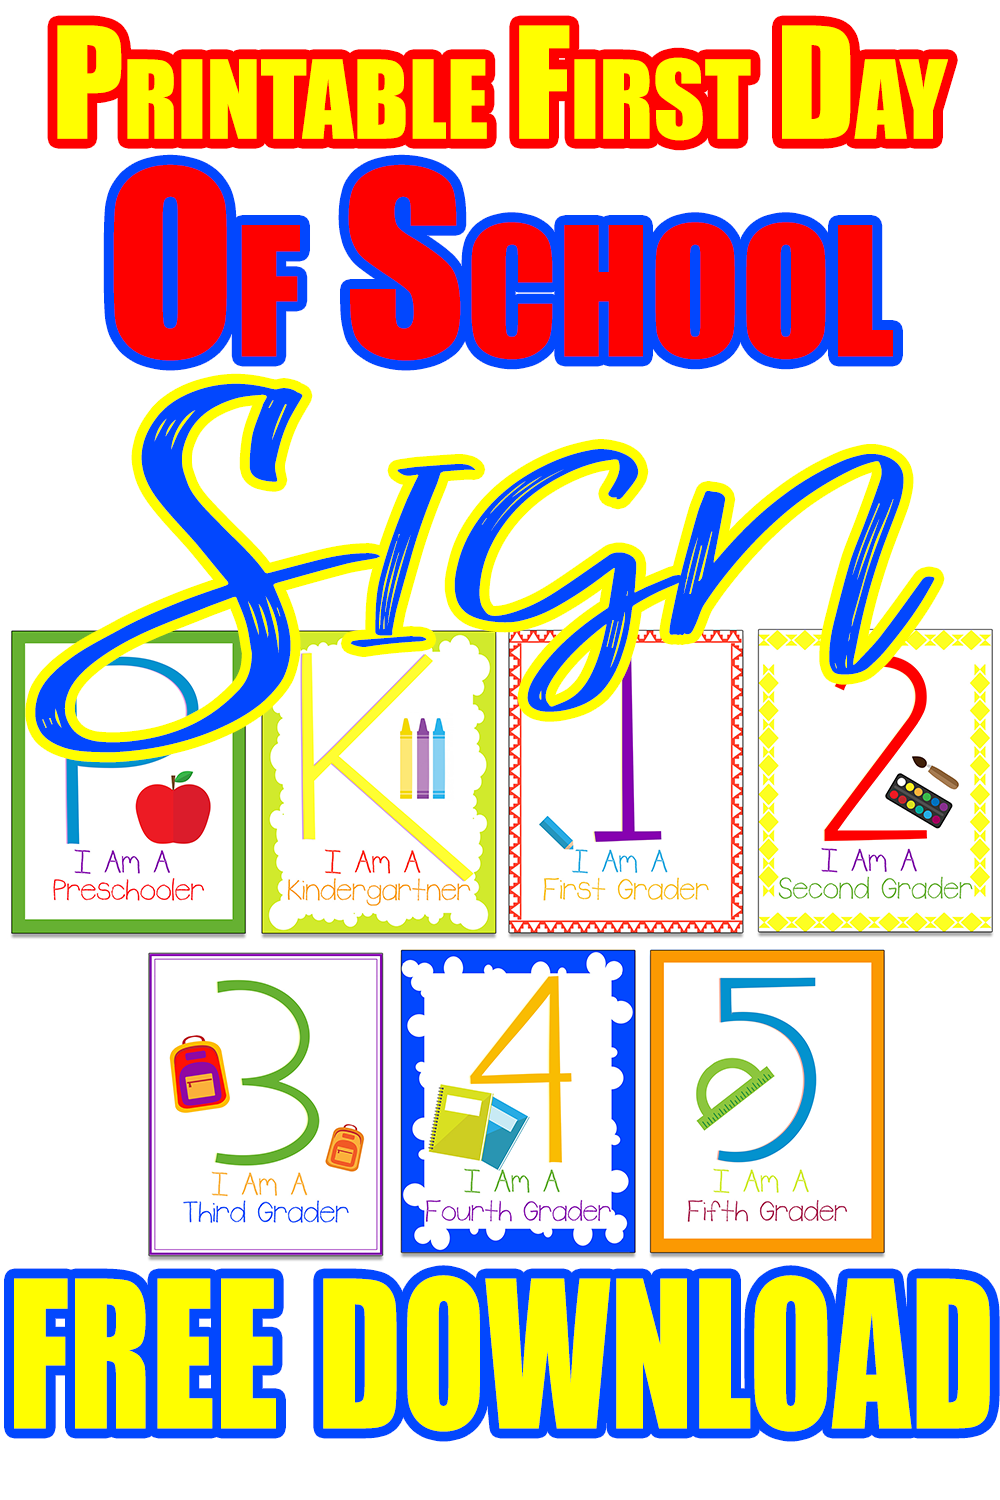 photograph about First Day of Pre K Sign Printable called Printable Very first Working day of College Signs and symptoms: Pre K in the course of 5th Quality